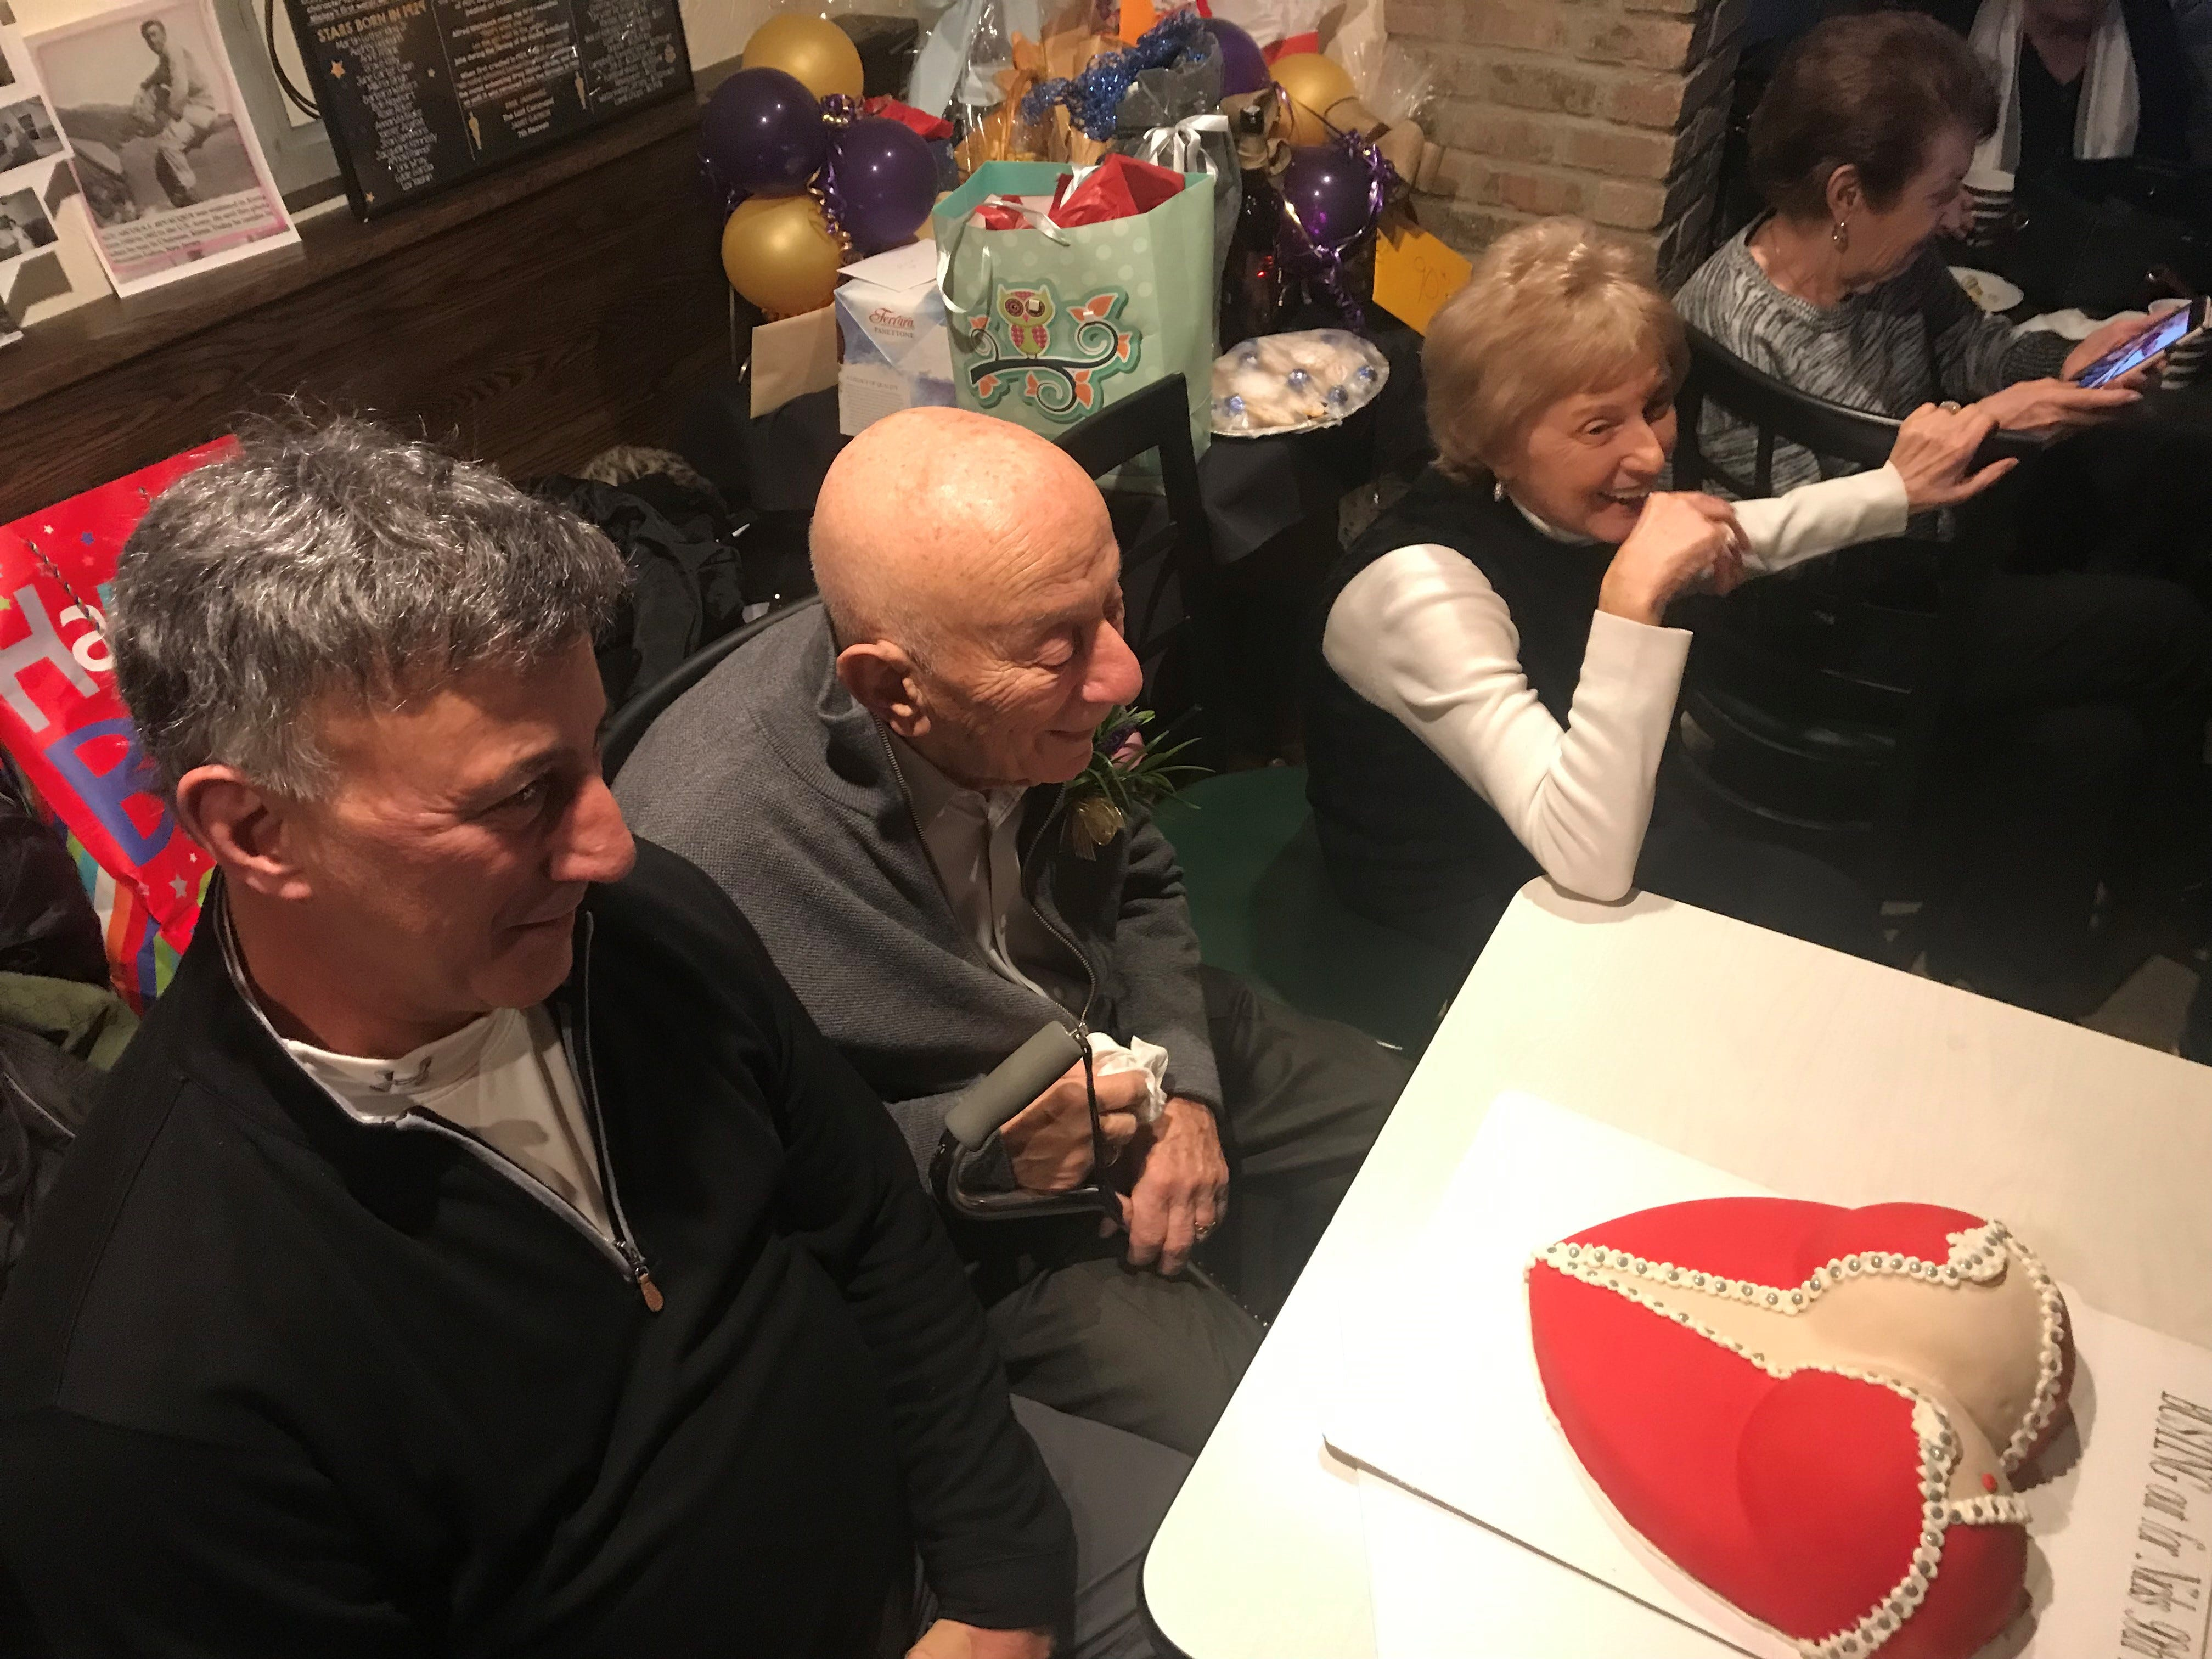 "Nicola ""Nick"" Bevacqua Jr., patriarch of the Bevacqua family that has owned and operated the Reservoir Tavern in Parsippany since 1936, receives a naughty cake. The famous Italian restaurant - the 10th oldest pizzeria in the United States - opened on a rare Sunday to celebrate Nick Jr.'s 90th birthday. Gannon has been a customer since he was a child. January 27, 2019."